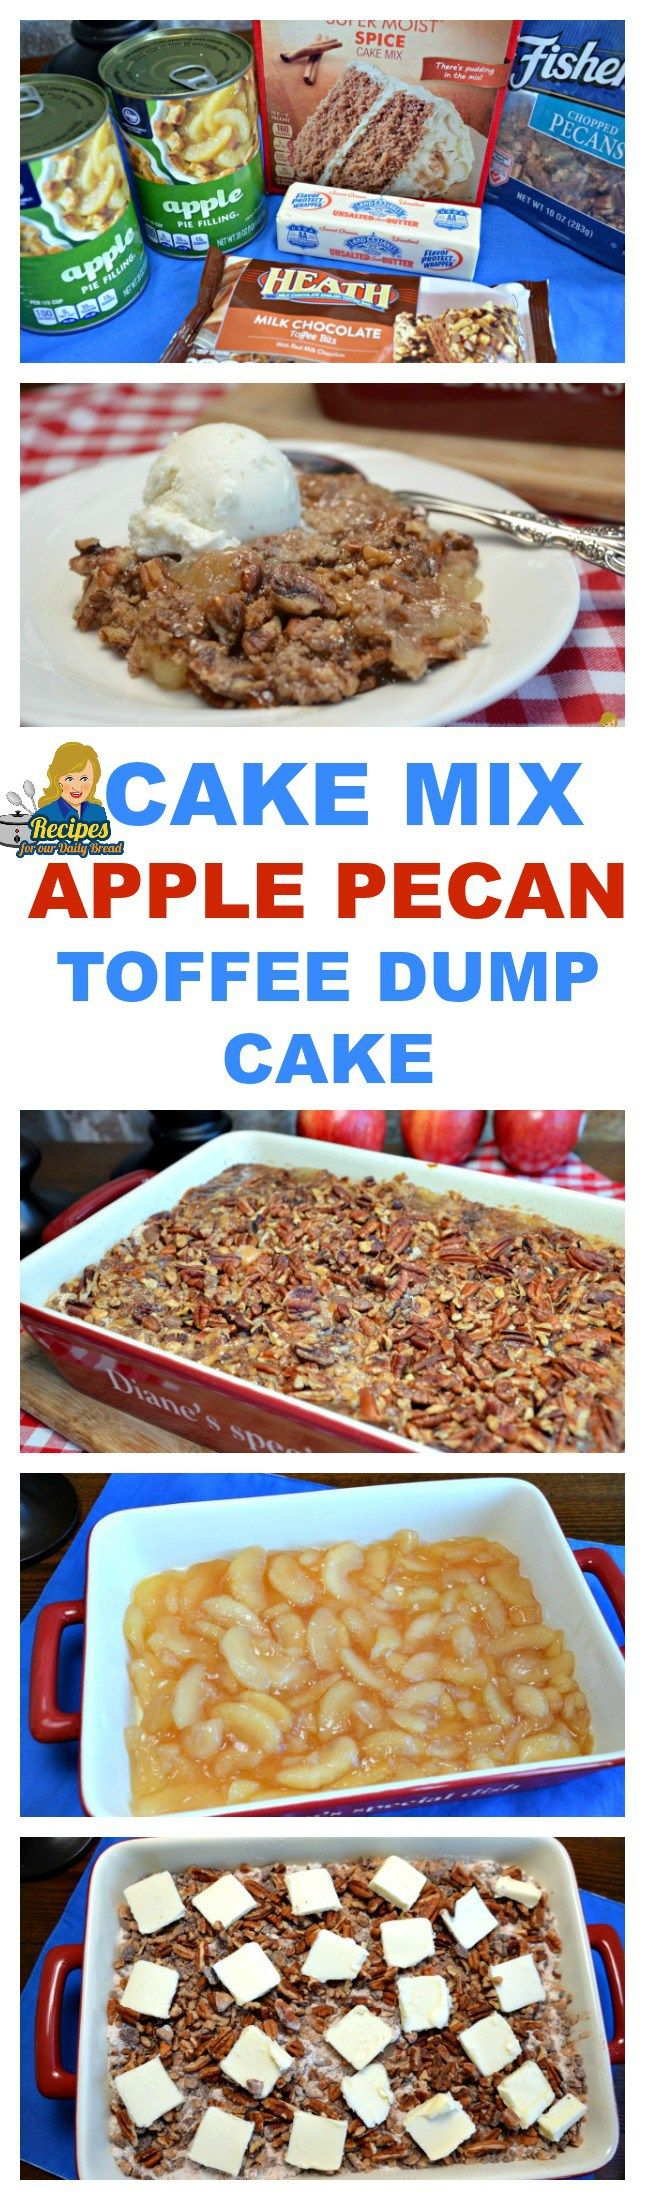 Just dump the ingredients in a 9x13 baking dish and bake for a delicious Apple Pie dessert. Apple Pecan Toffee Dump Cake is a super easy dessert.